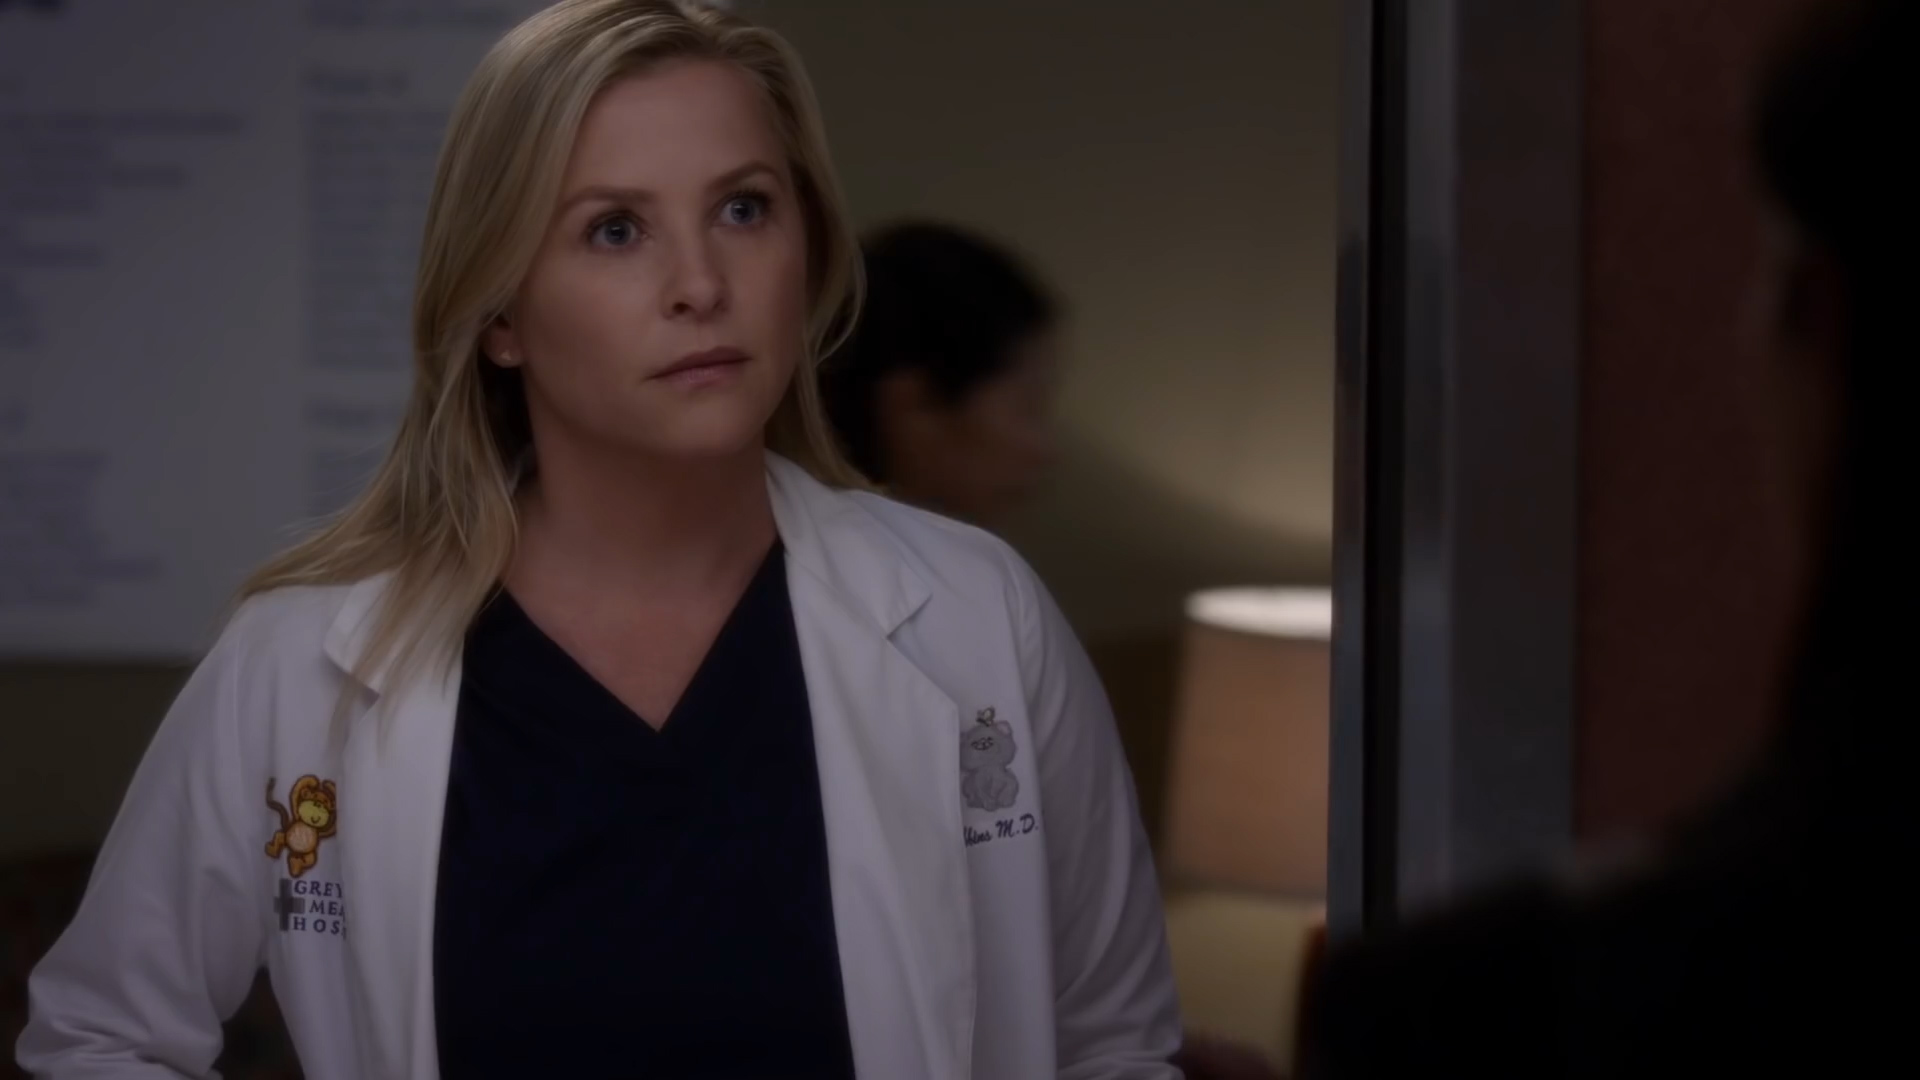 Grey's Anatomy S13 - Arizona Robbins Scene